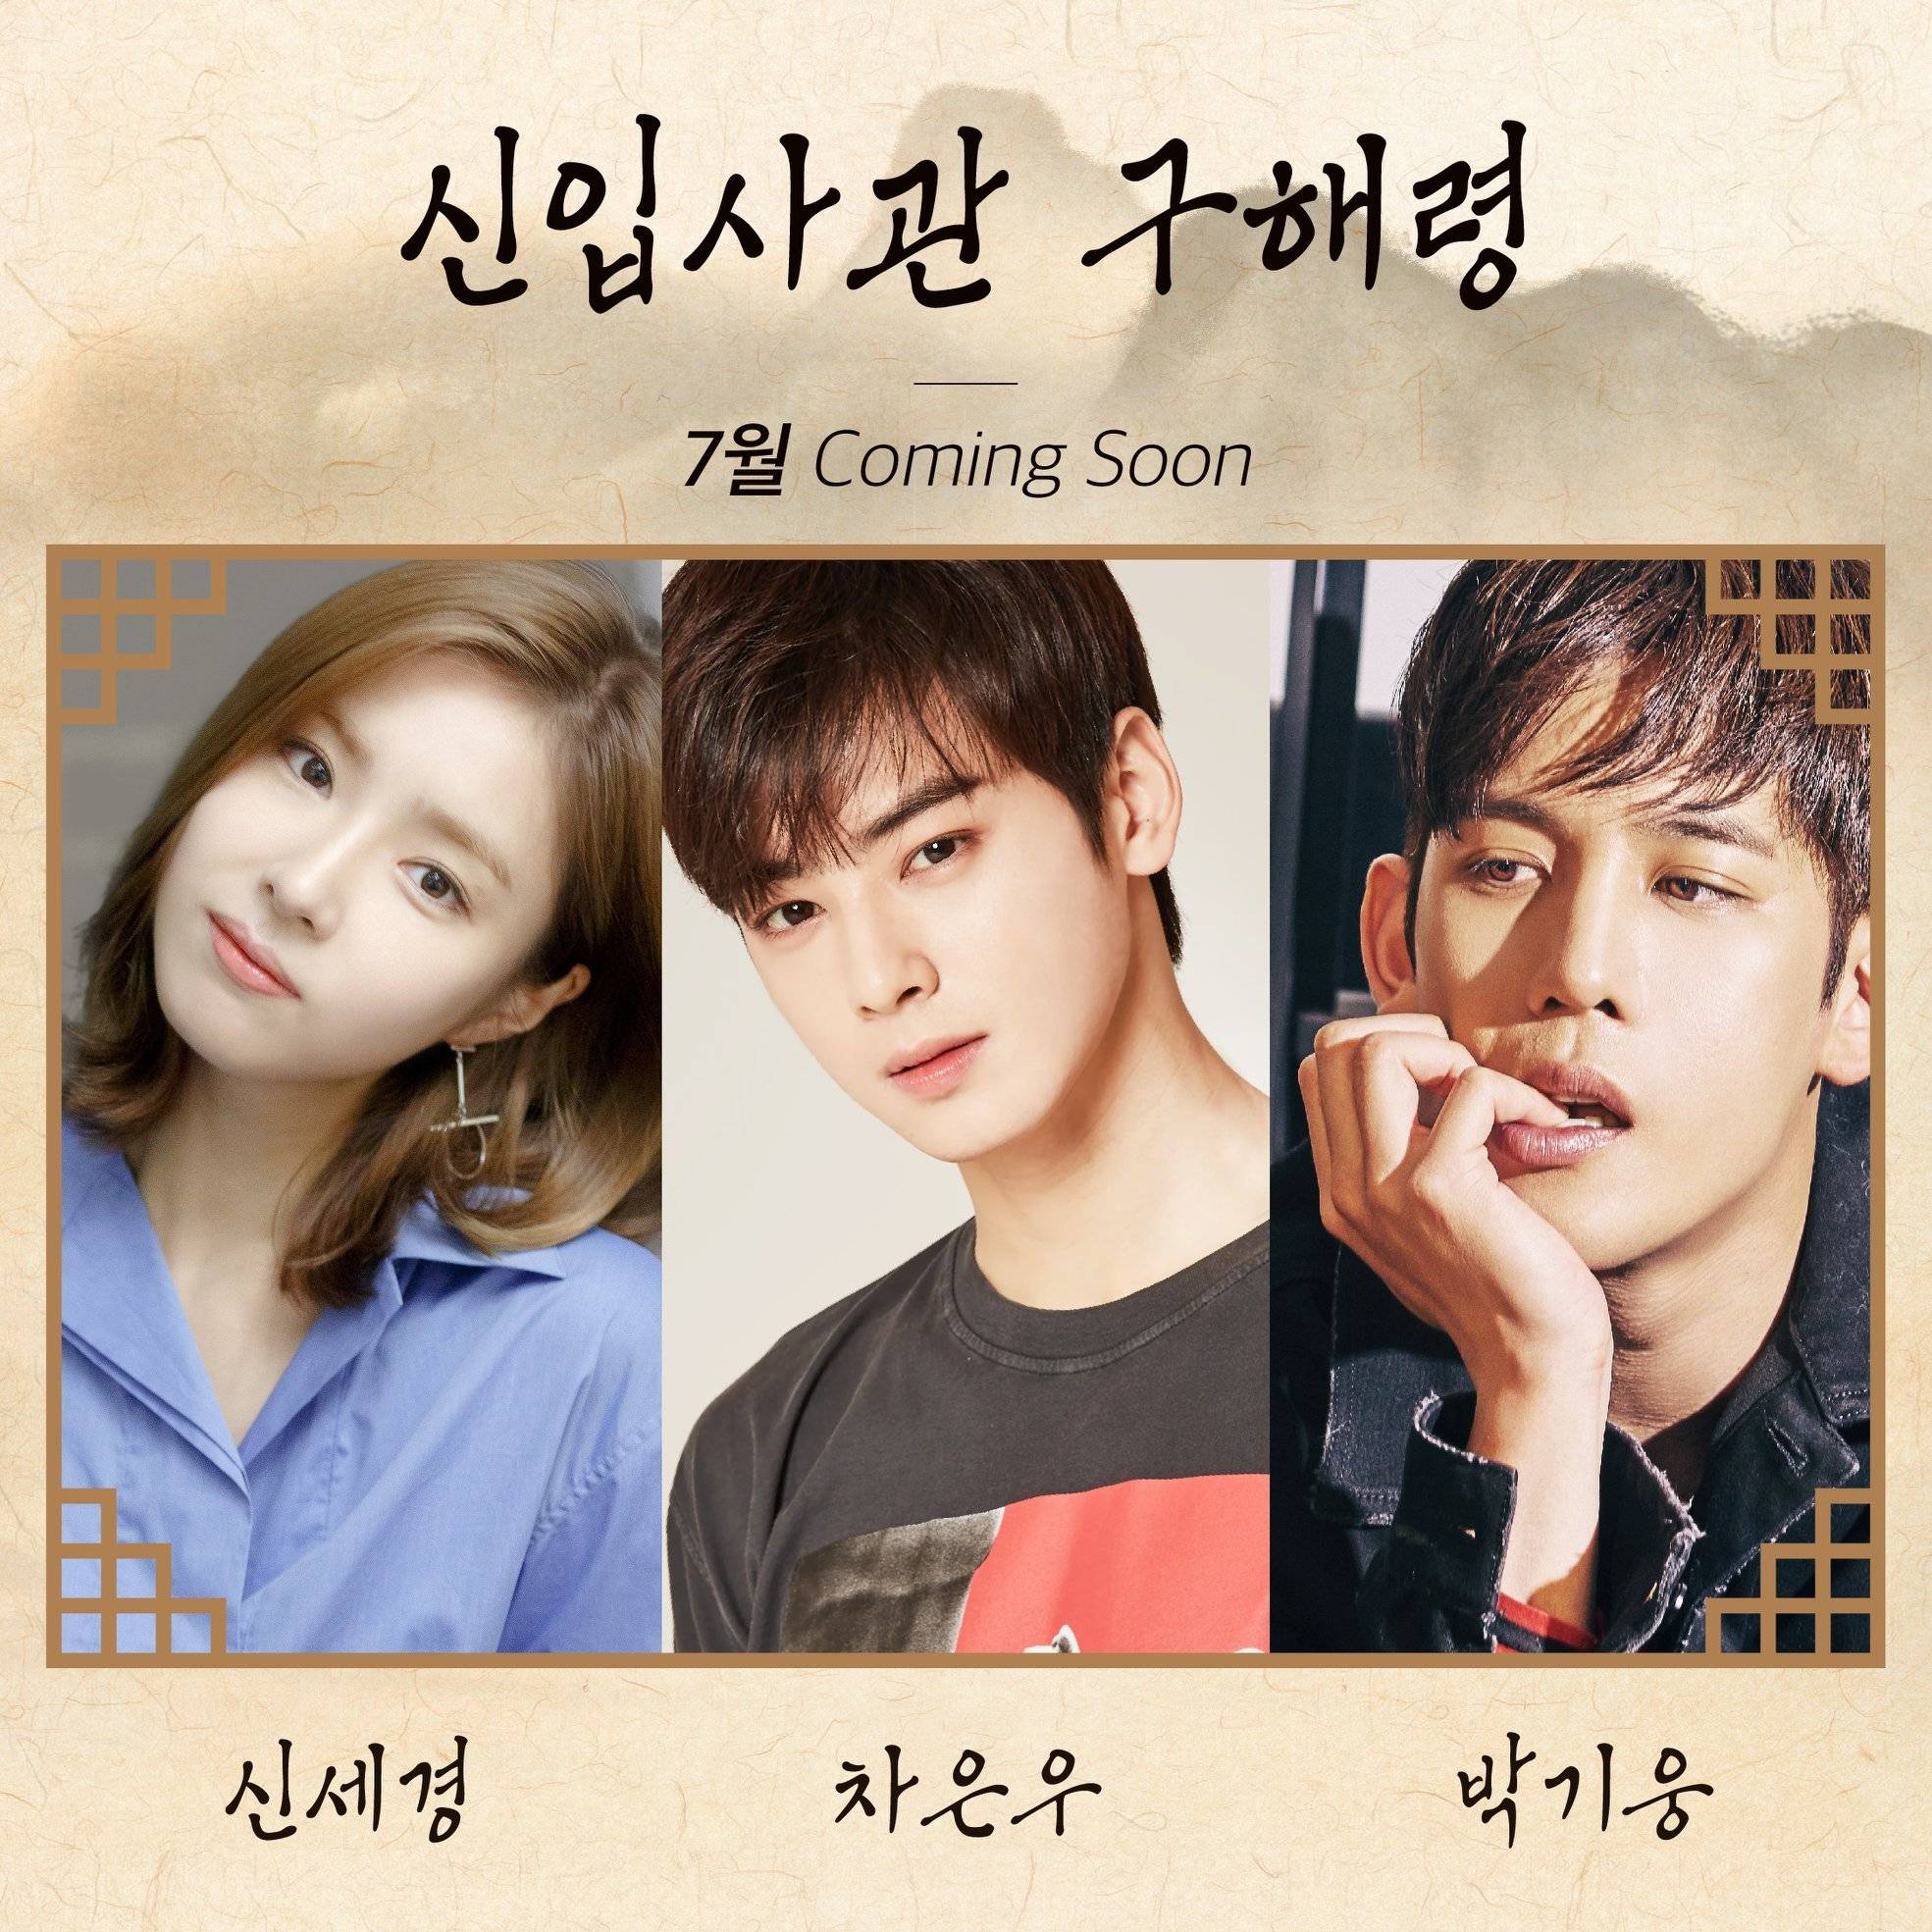 Cast Update] Cast Updated for the Upcoming Korean Drama